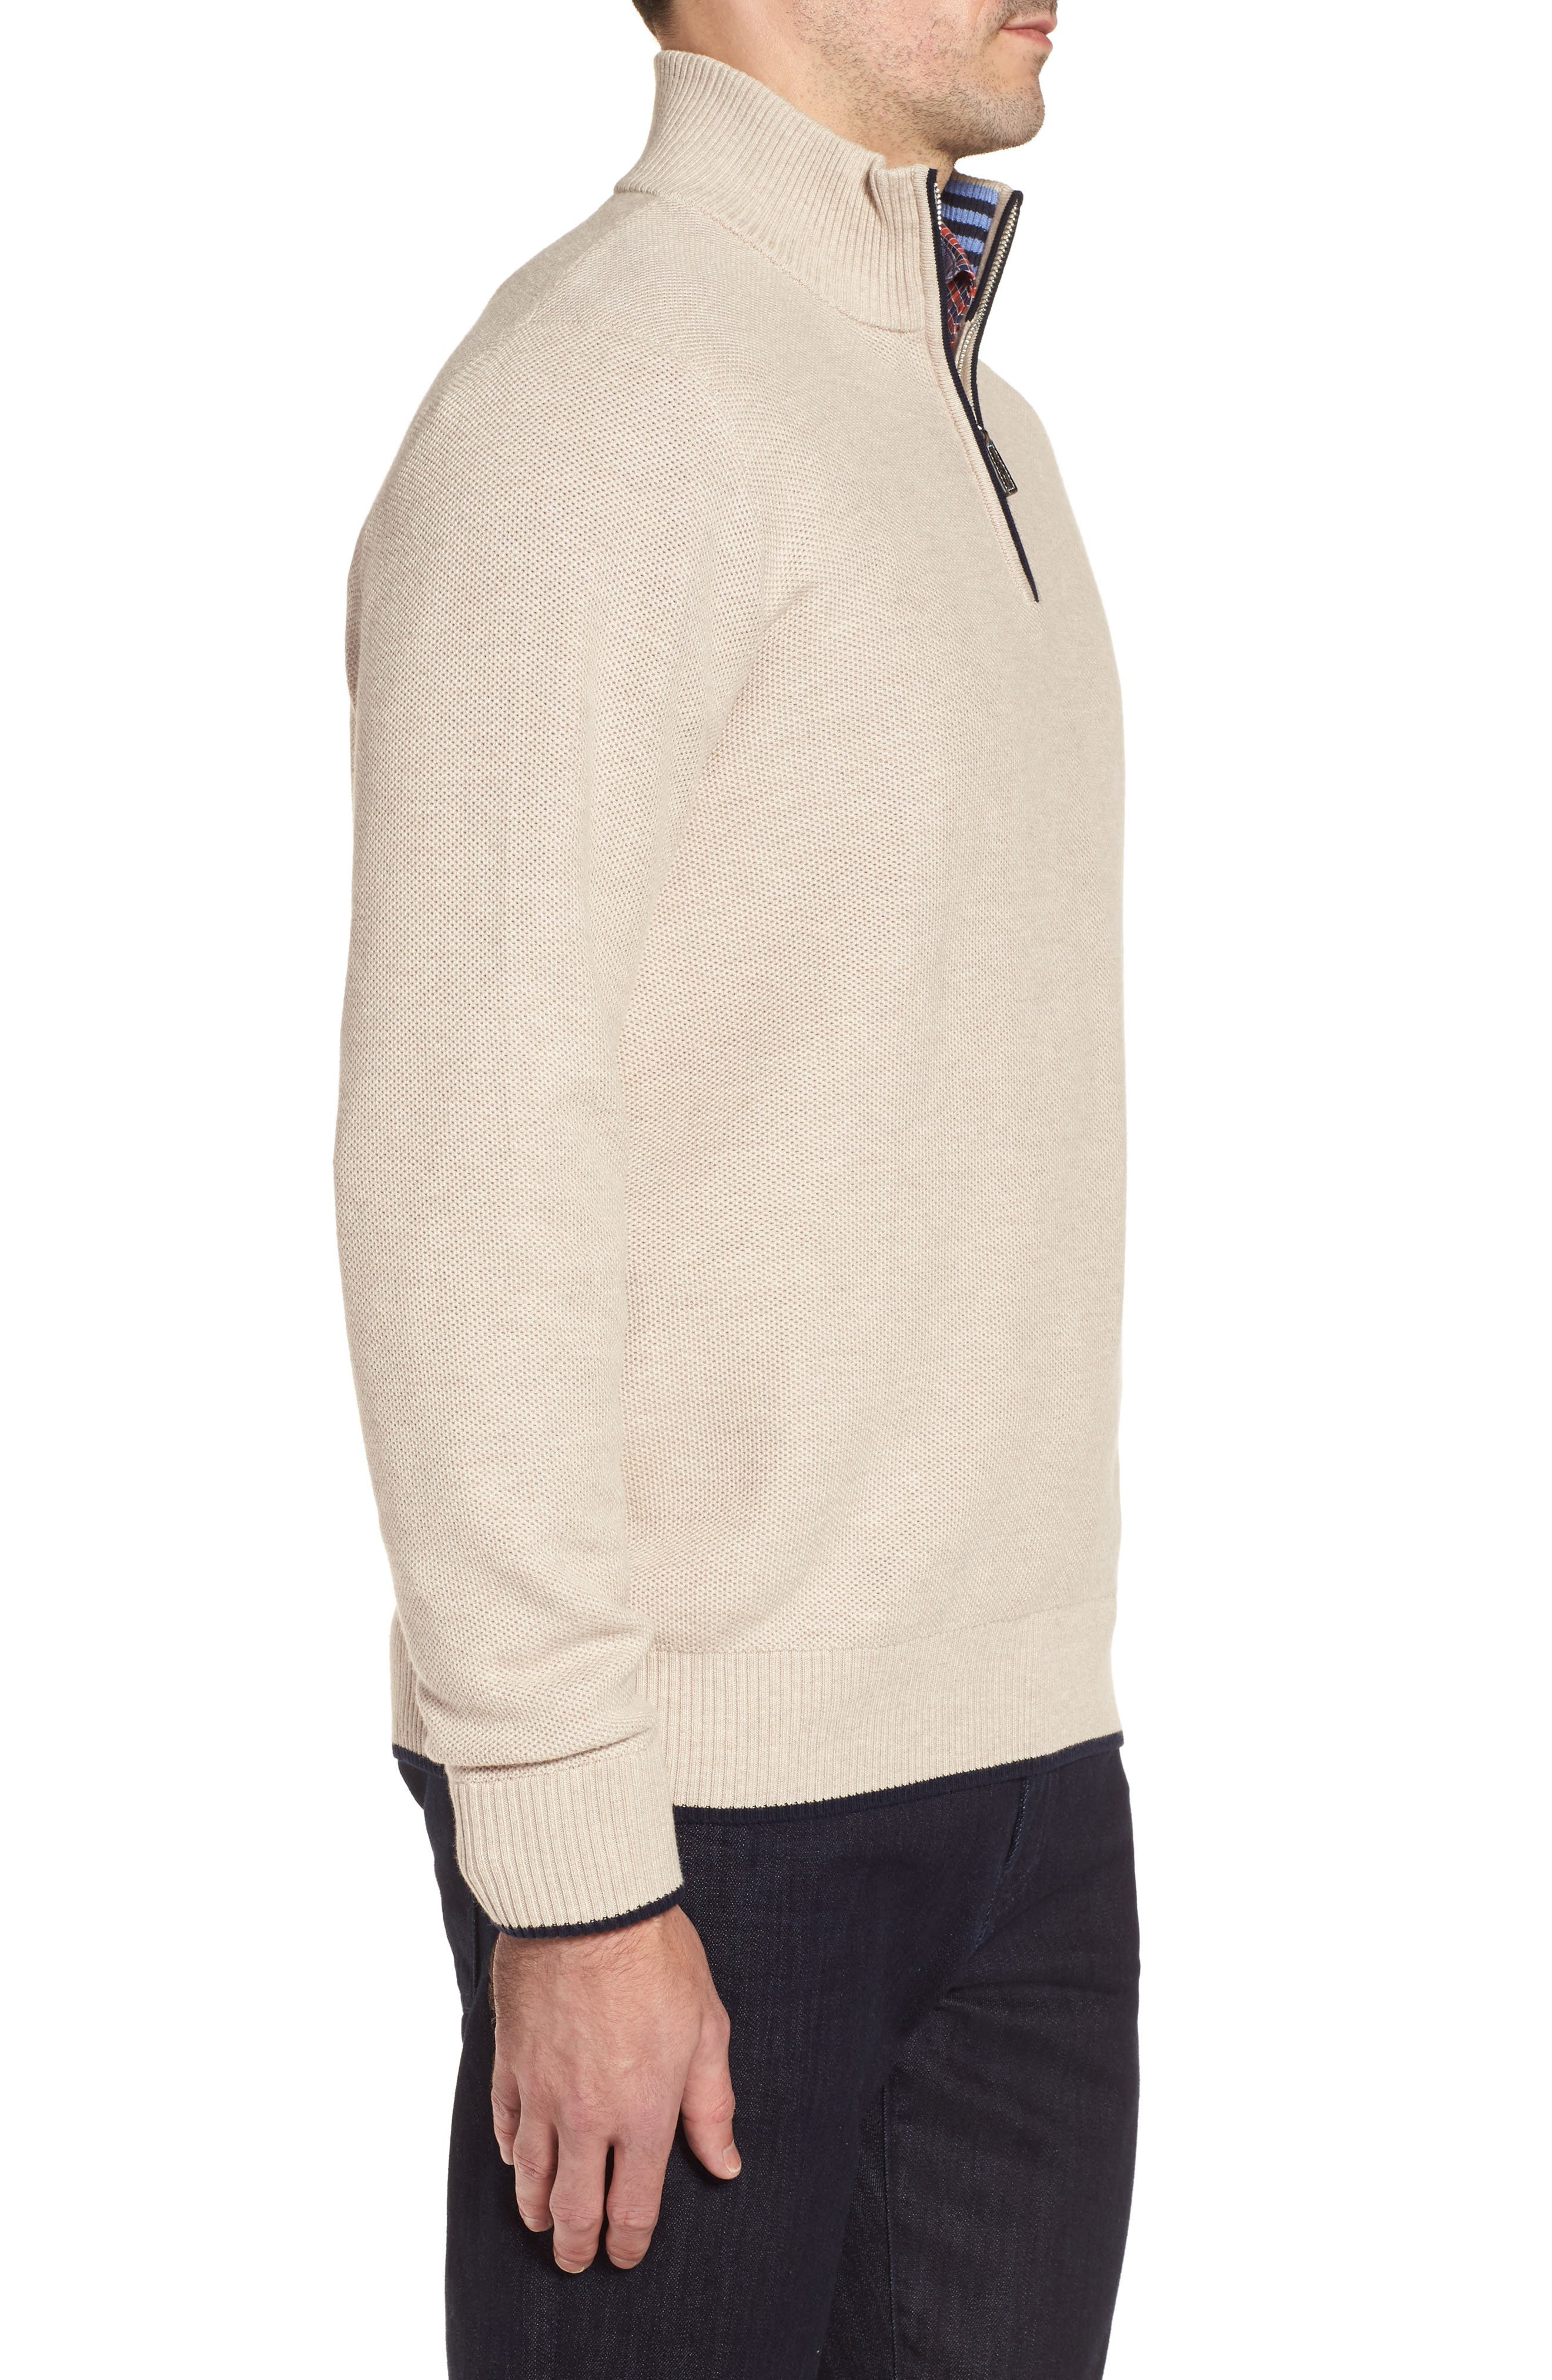 Sikes Tipped Quarter Zip Sweater,                             Alternate thumbnail 3, color,                             Oatmeal